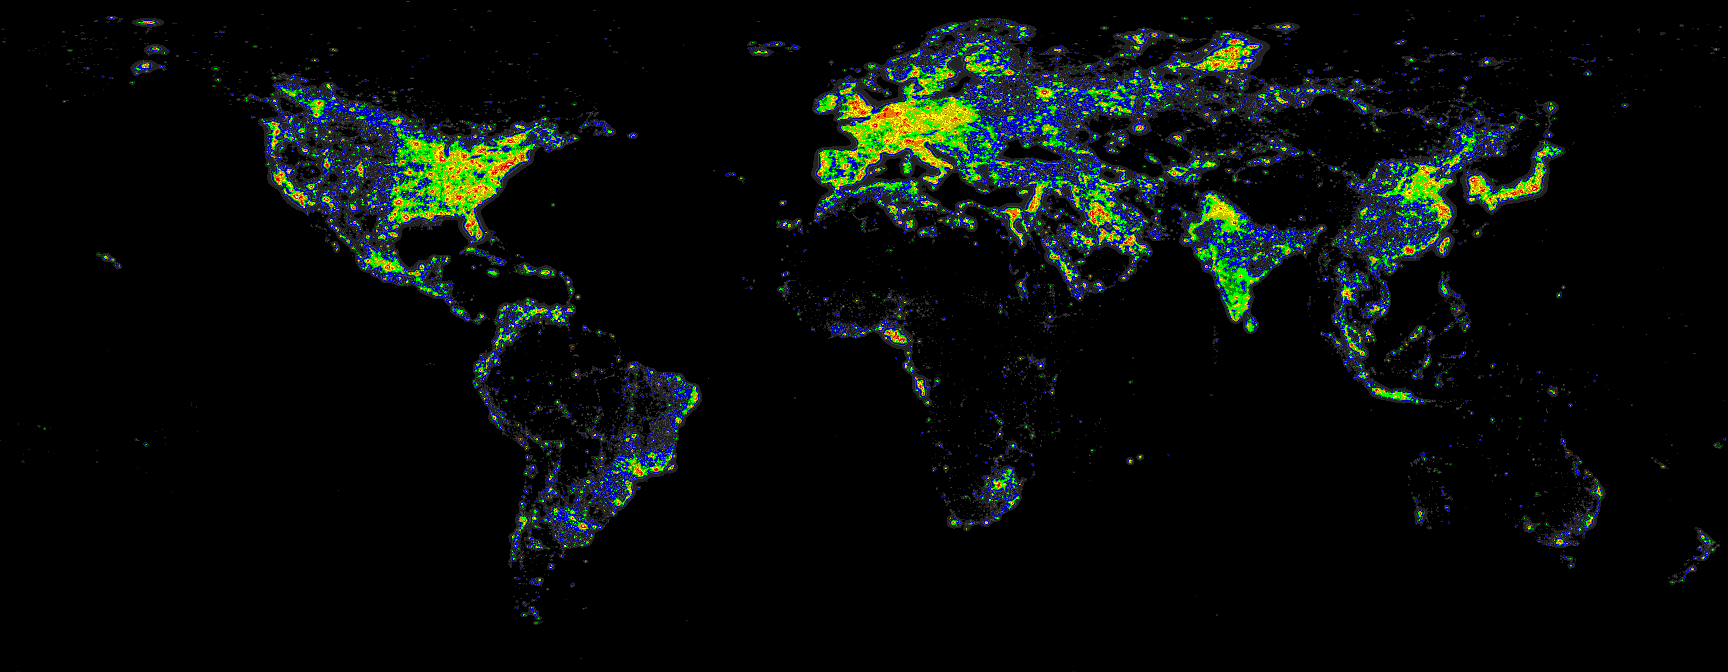 Light pollution map of the world maps pinterest light pollution light pollution map of the world gumiabroncs Images